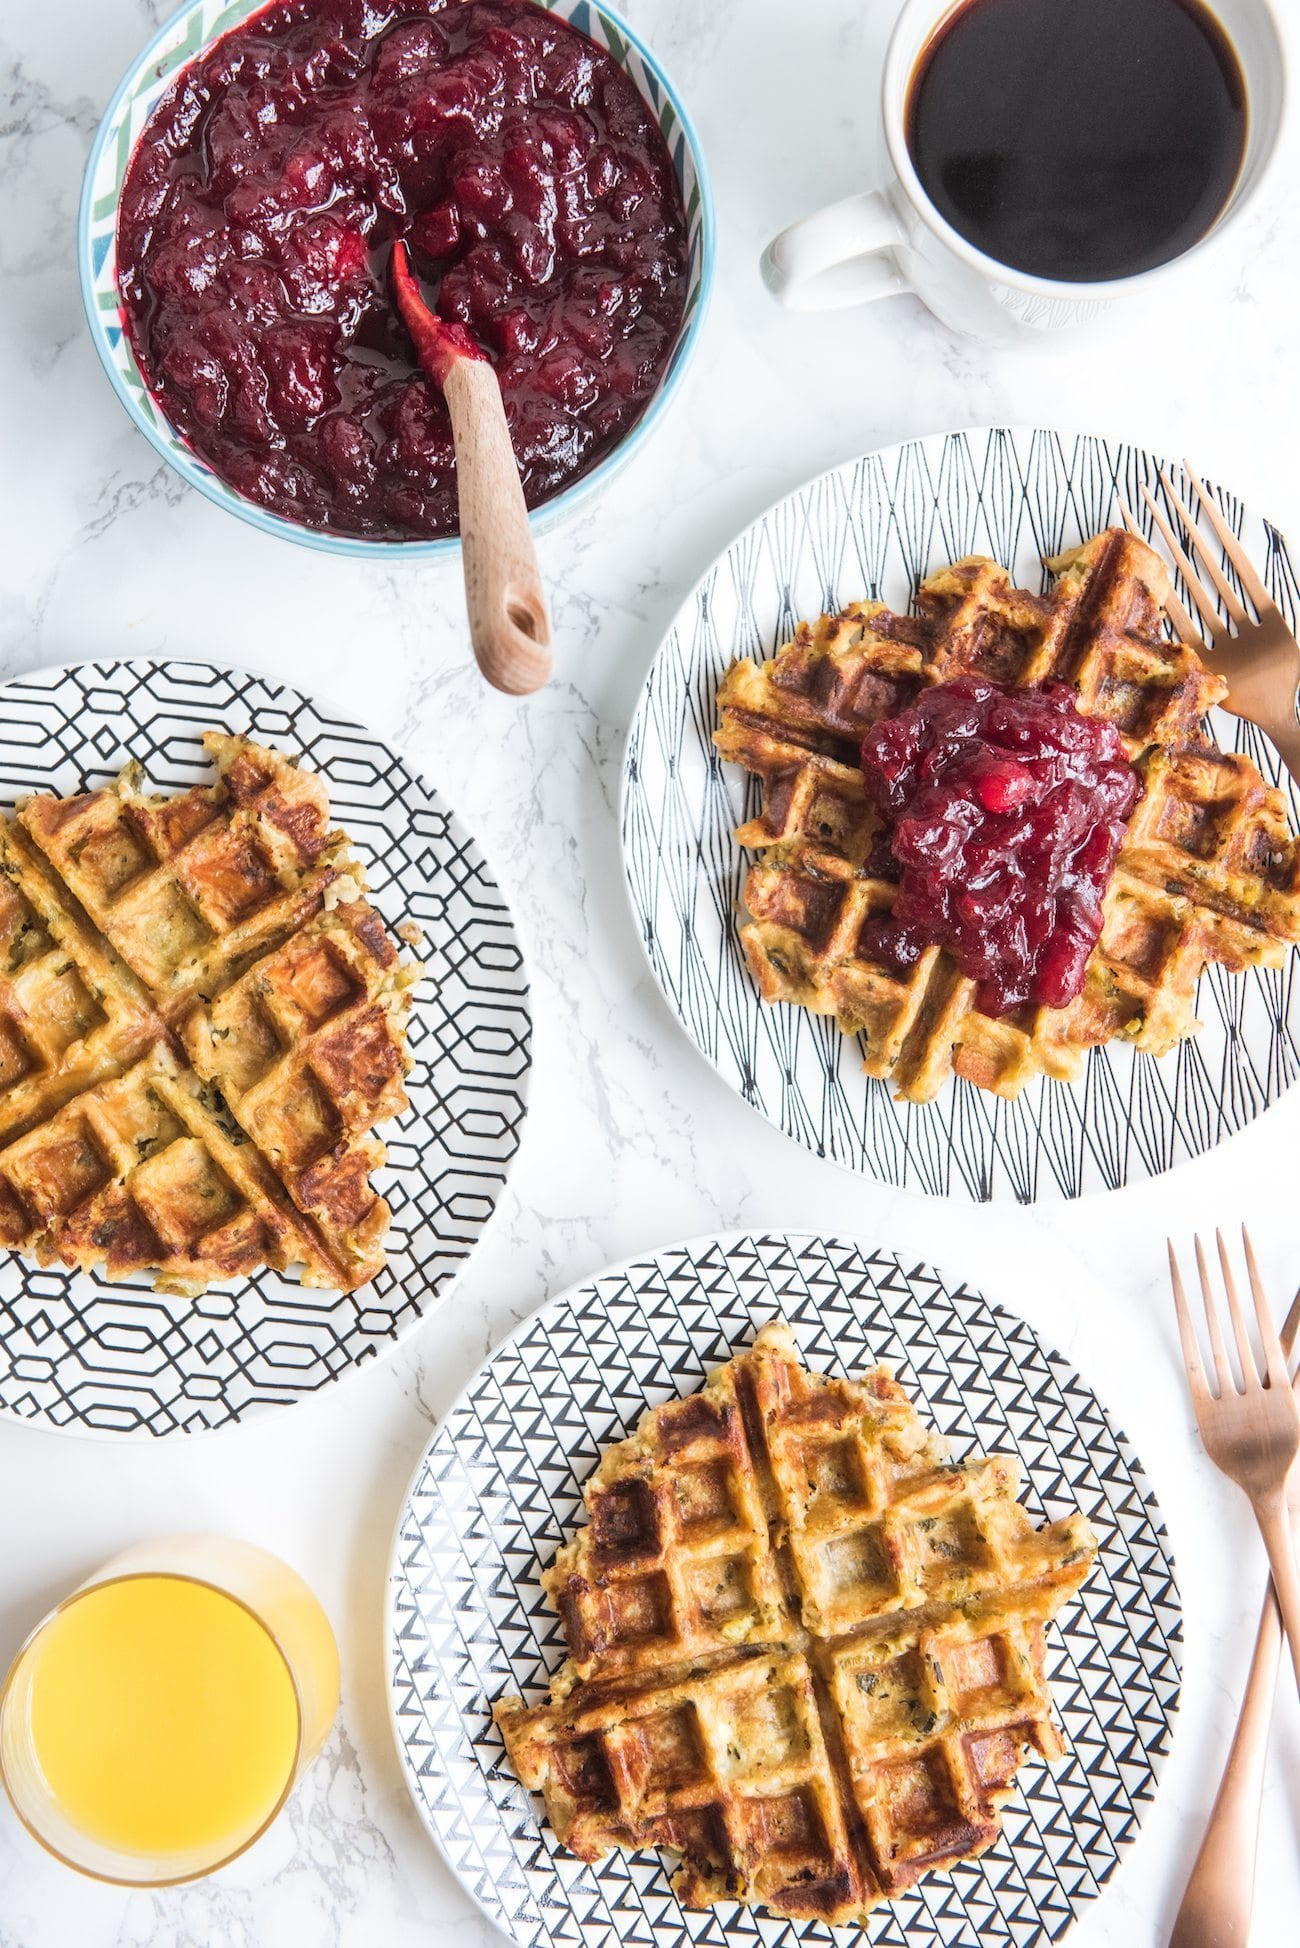 Leftover Stuffing Waffles Recipes | What to do with leftover stuffing, entertaining tips, party ideas, holiday party ideas and more from @cydconverse